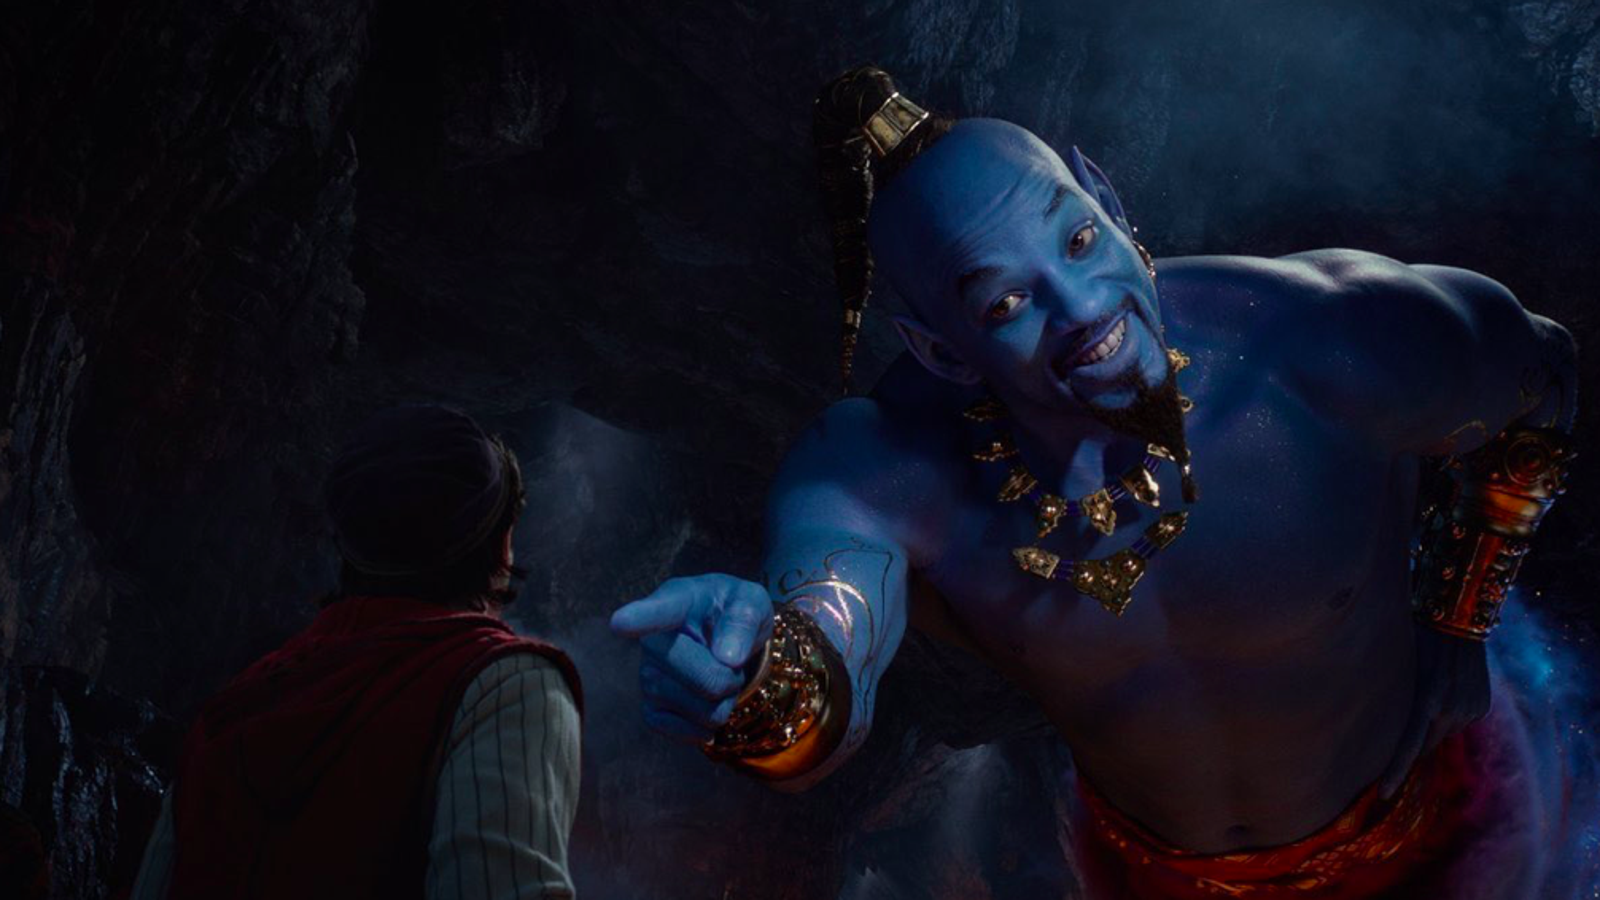 The New Aladdin Trailer Finally Shows Will Smith's Blue Genie in Action